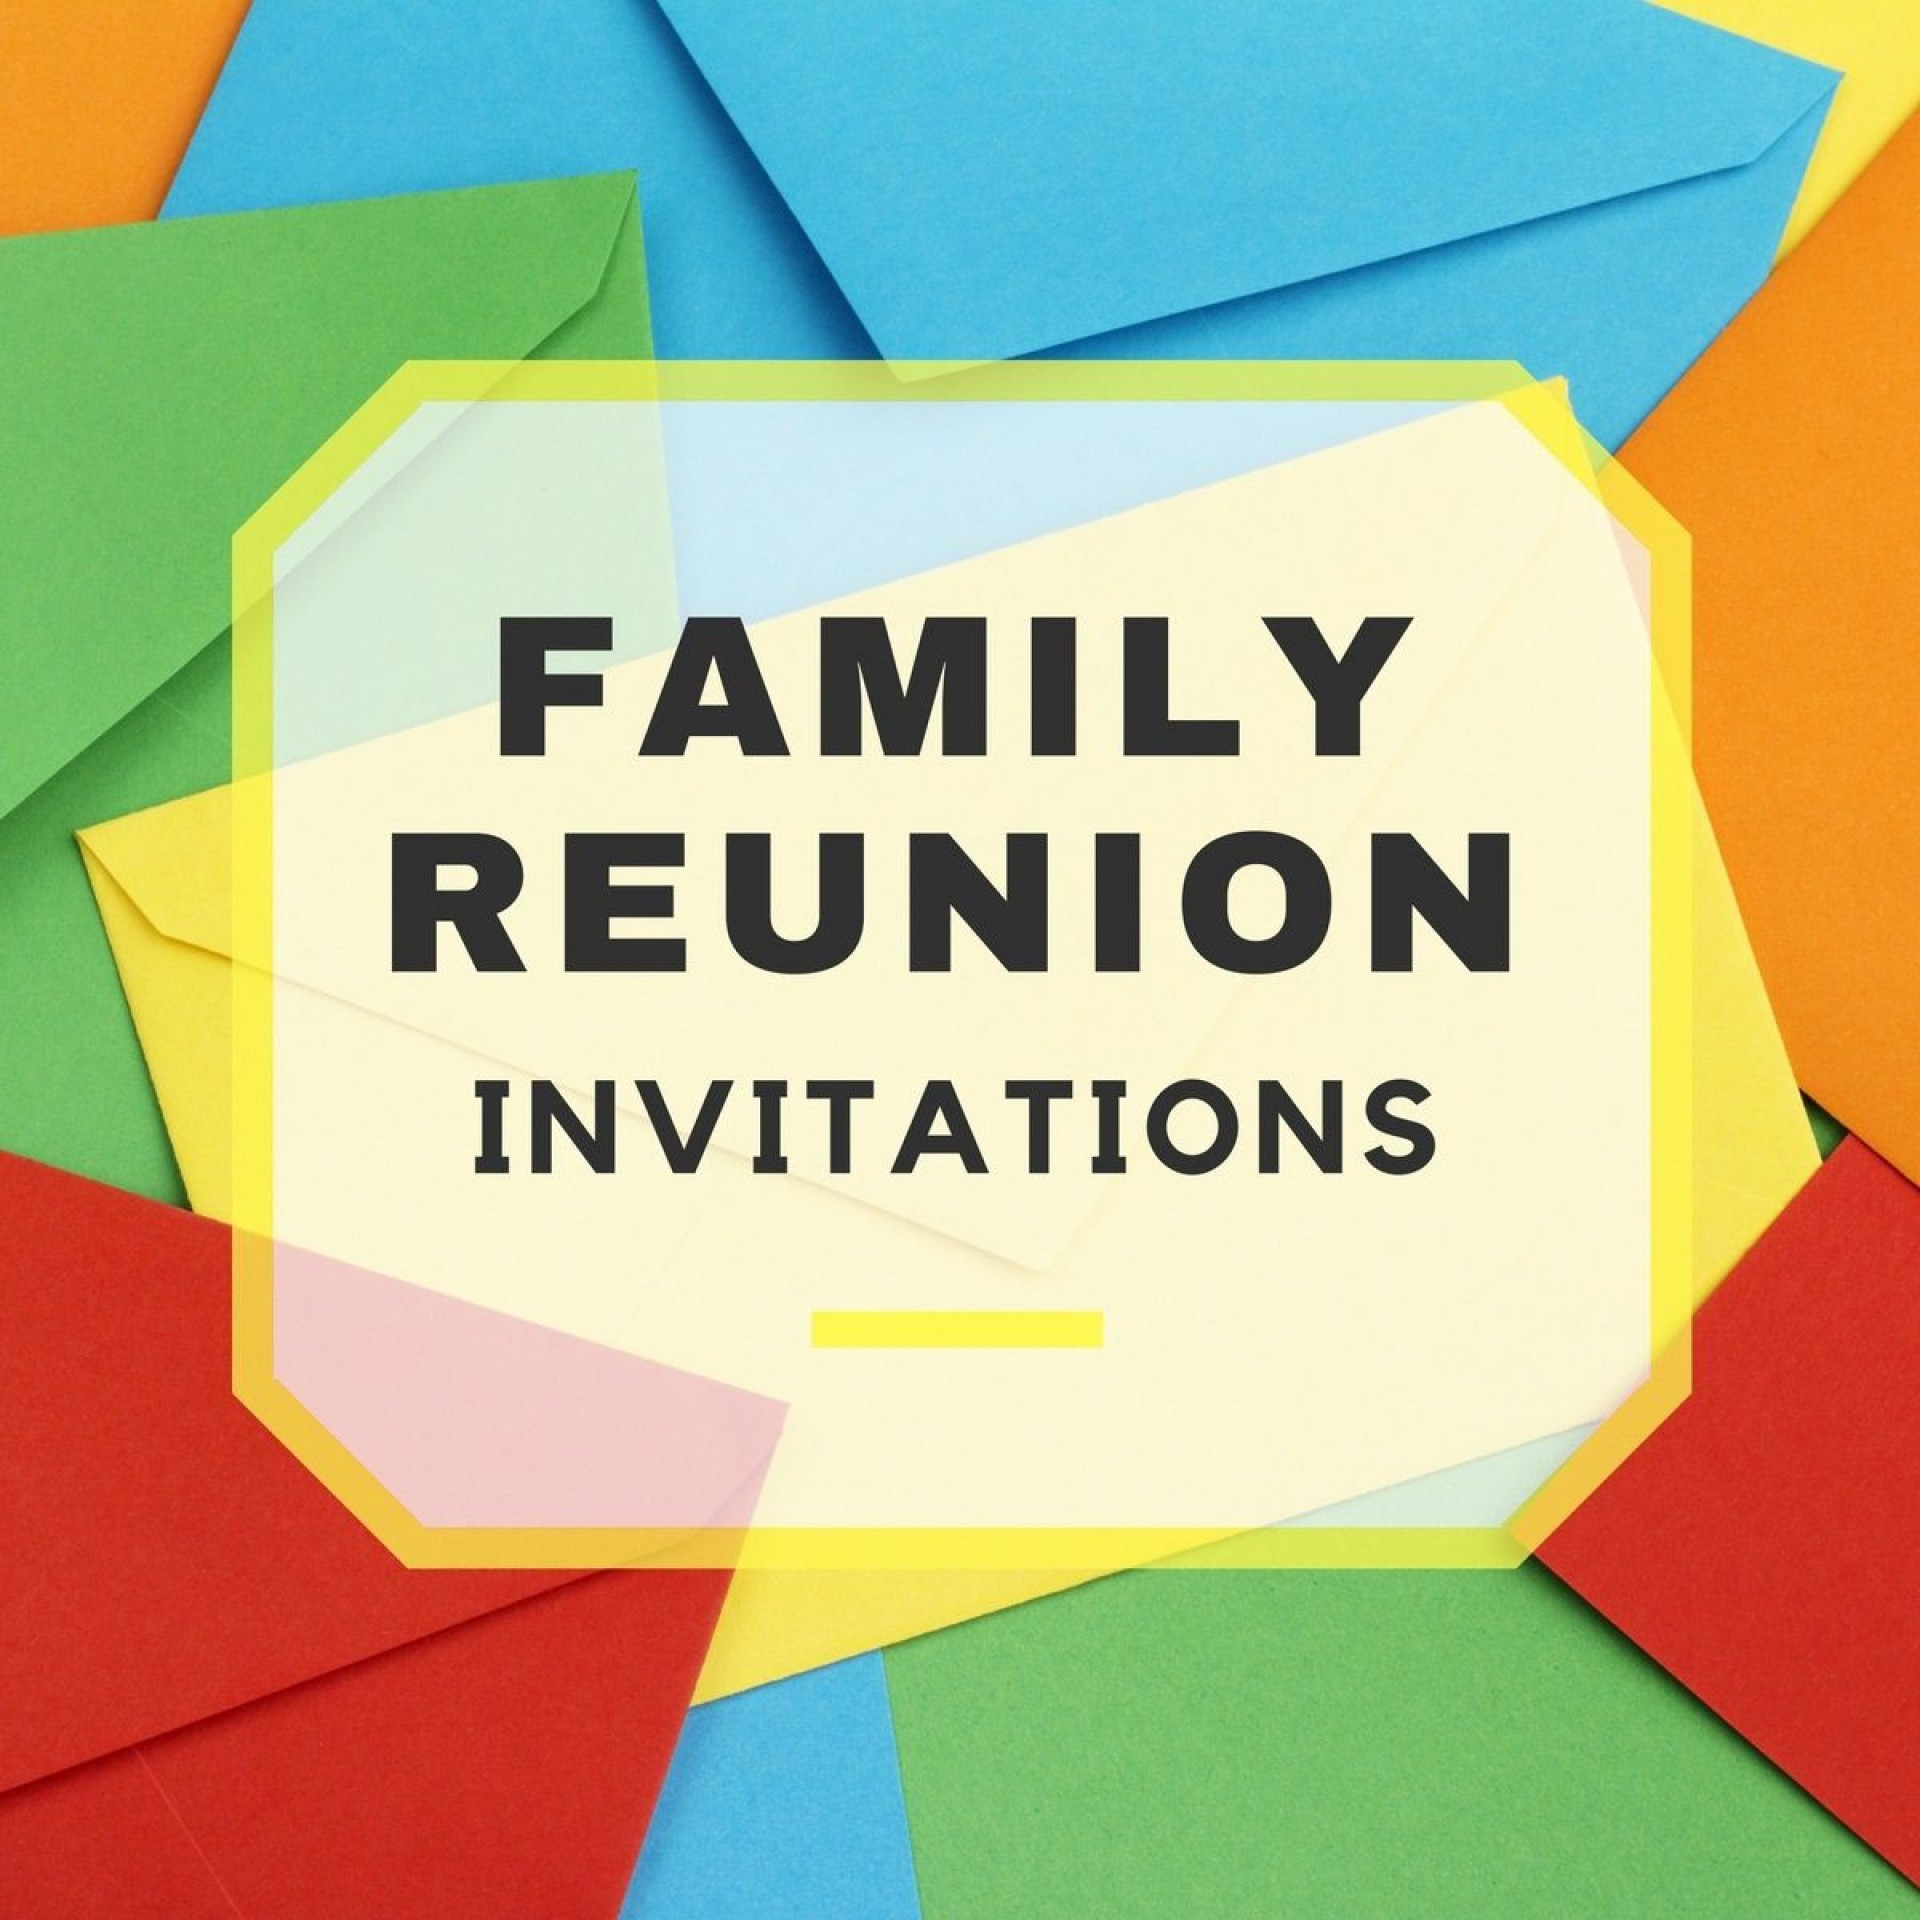 006 Remarkable Free Printable Family Reunion Invitation Template Highest Clarity  Templates Flyer1920